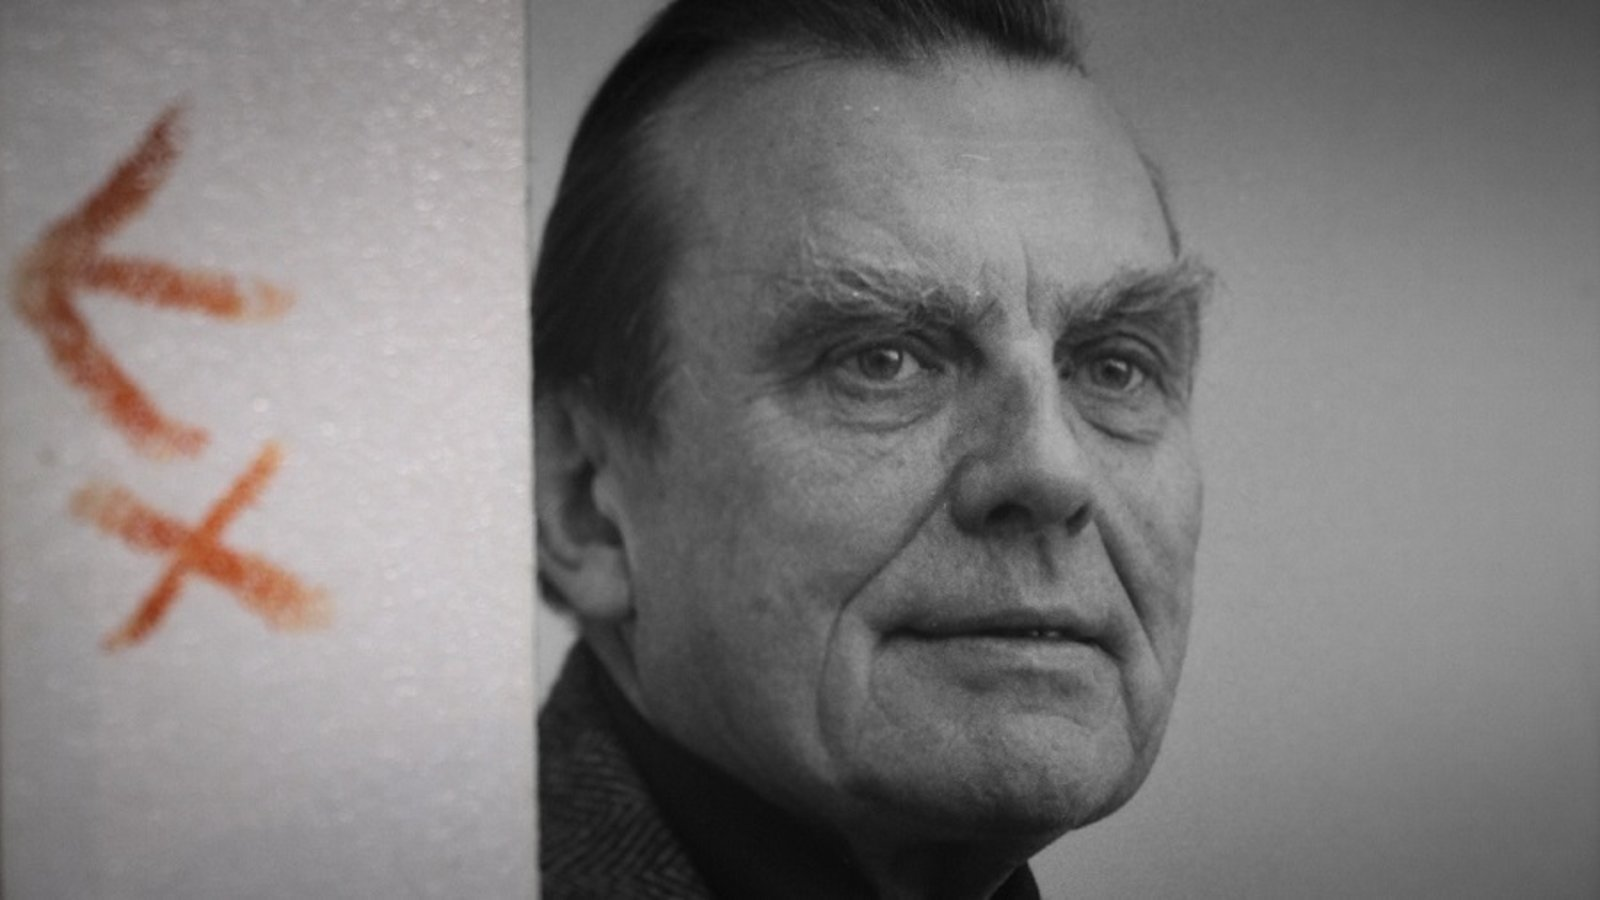 Milosz - An Iconic Statesman, Poet and Nobel Laureate